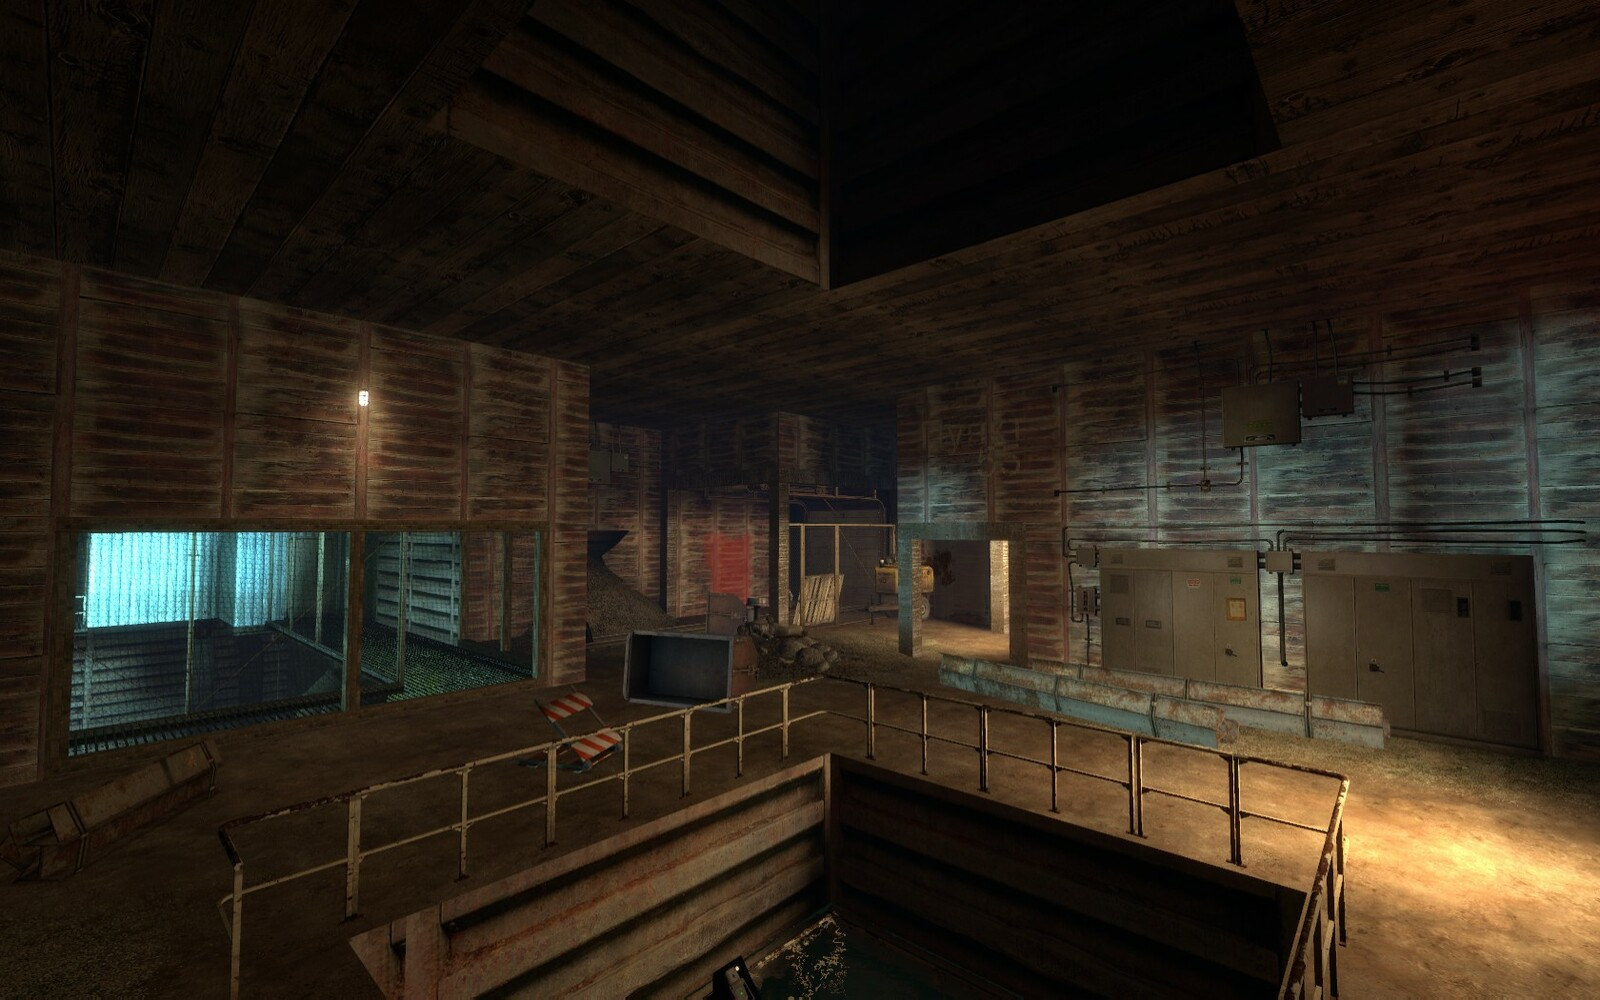 This is the bottom of the elevator. It is like a lobby where there is a lot to see. The view into the main chamber is a blue color to distinguish it from the current area.